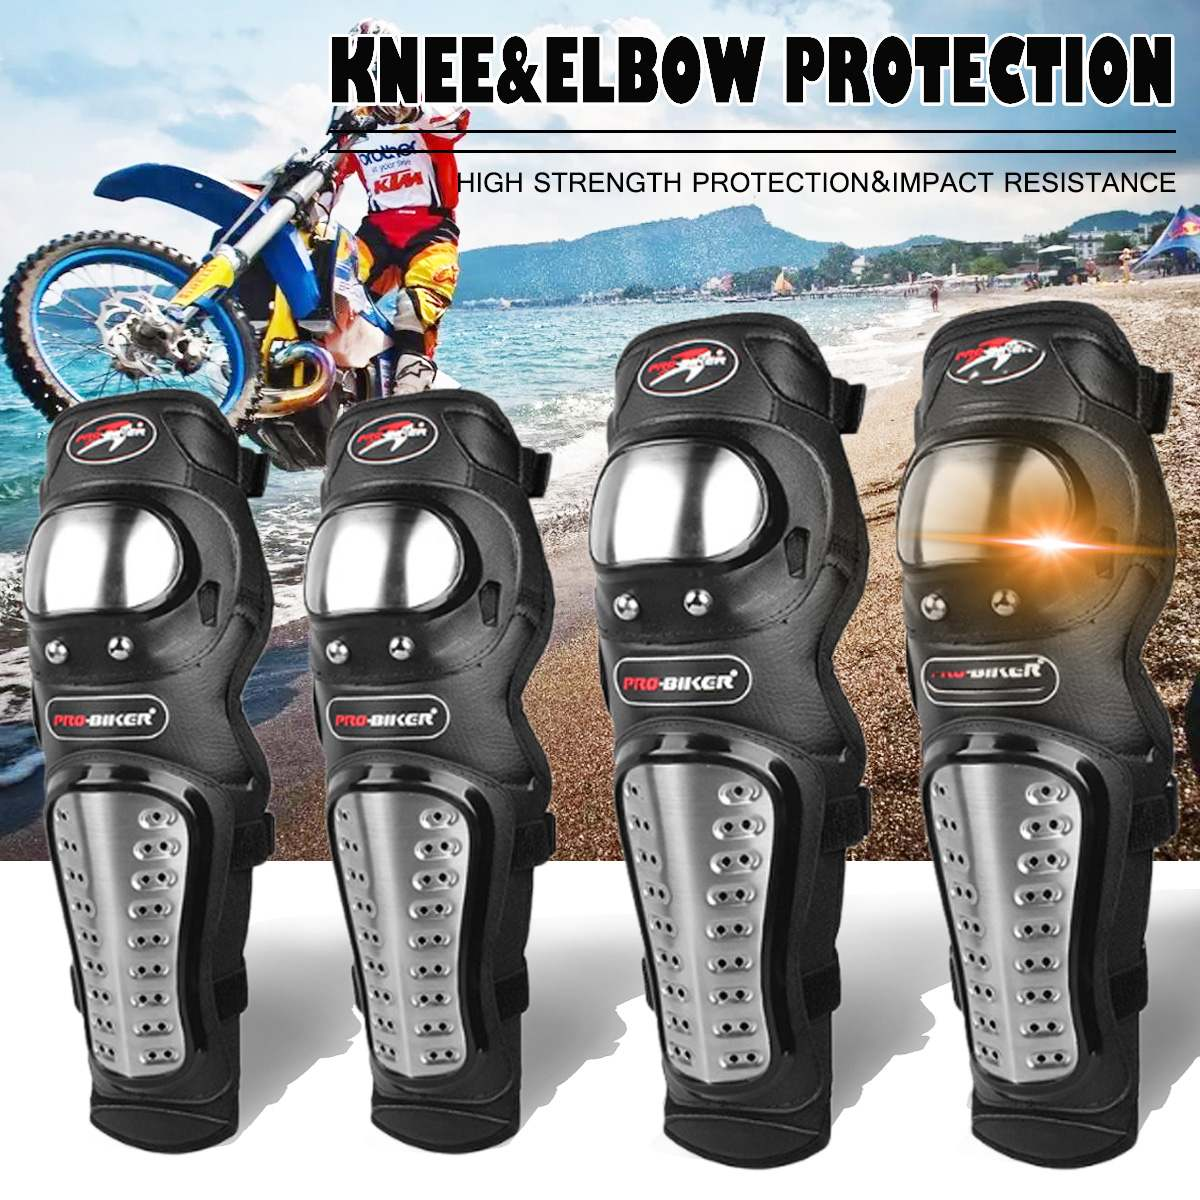 Motorcycle Knee Pad Motocross Knee Guards Motorcycle Protection Knee Motor-Racing Guards Safety Gears Race Brace